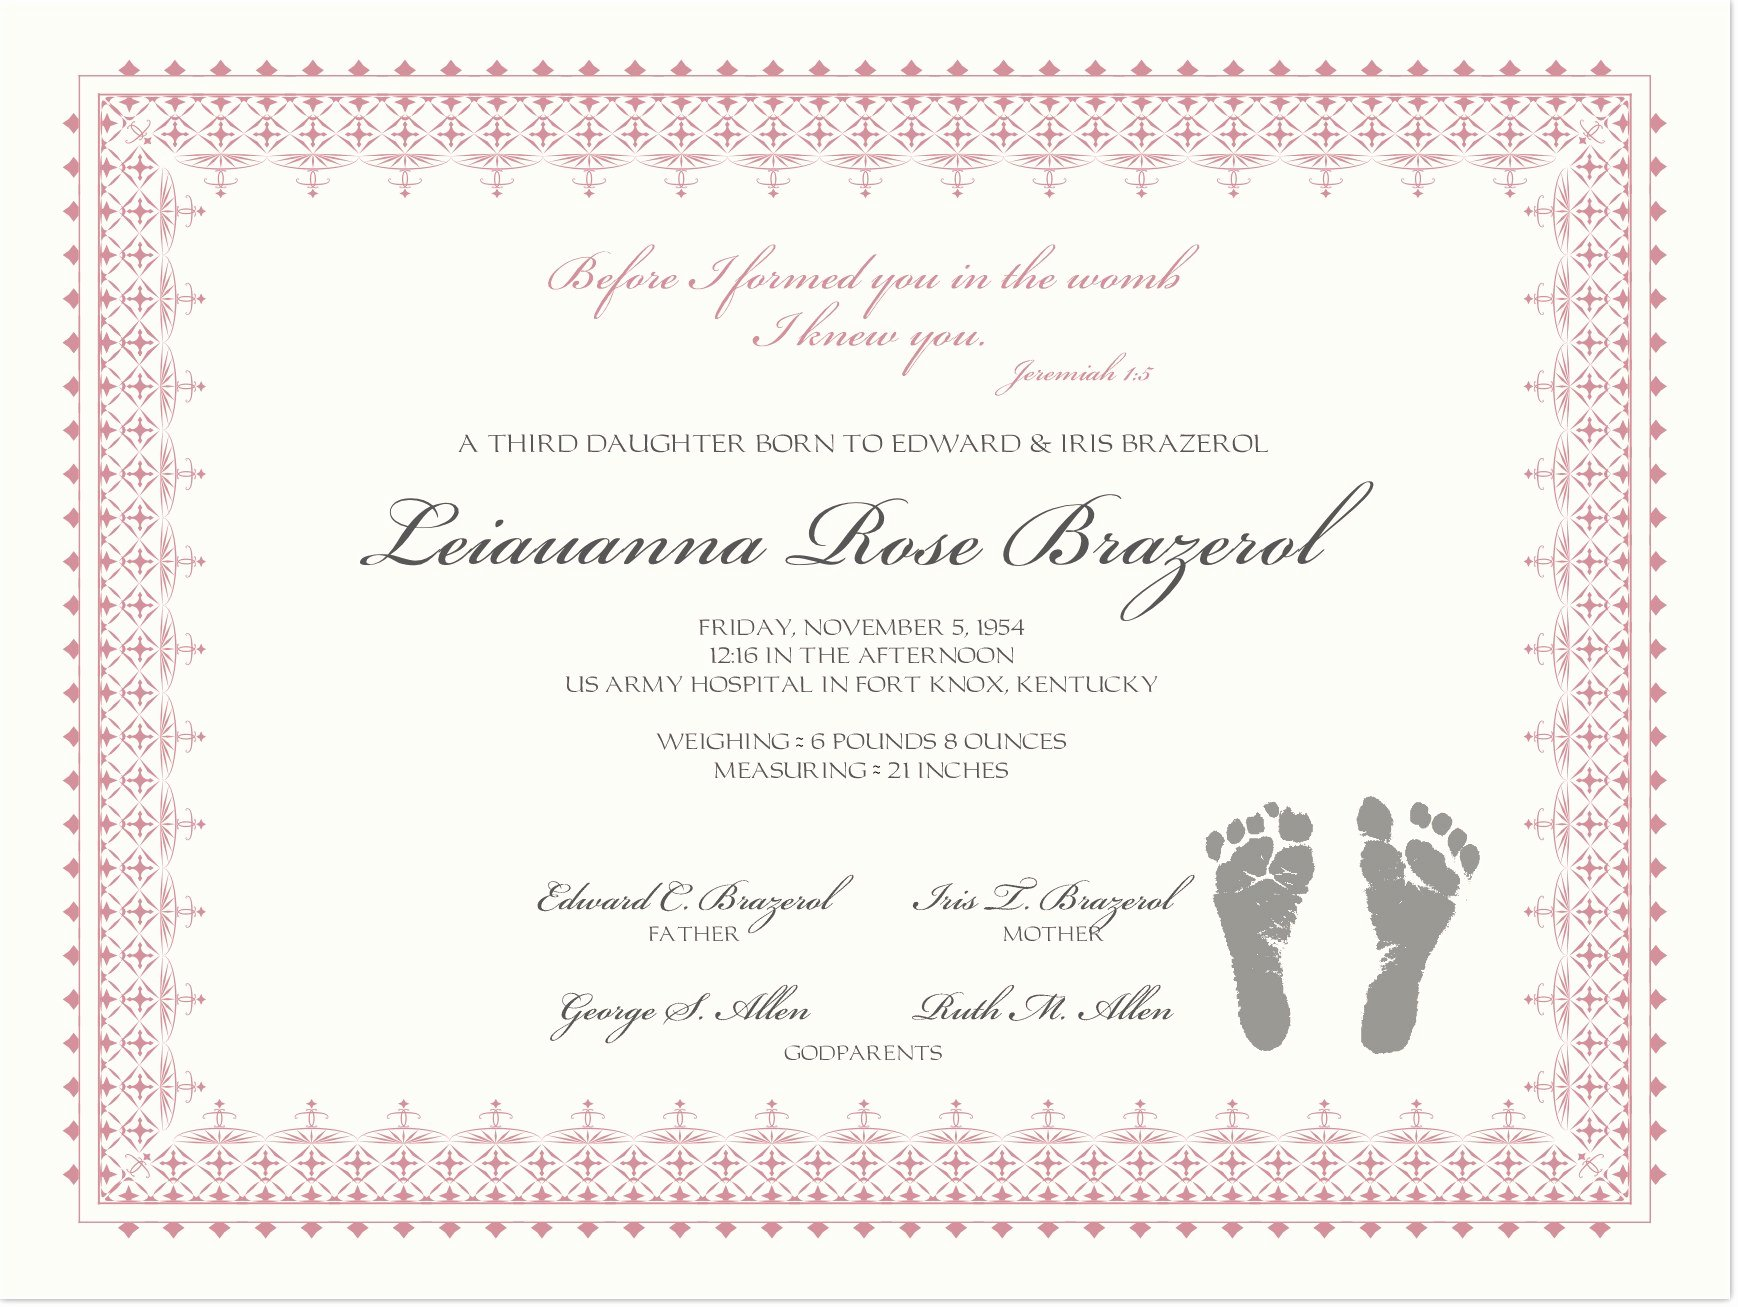 Birth Certificate Template with Footprints Luxury Birth Certificate with Baby Footprints